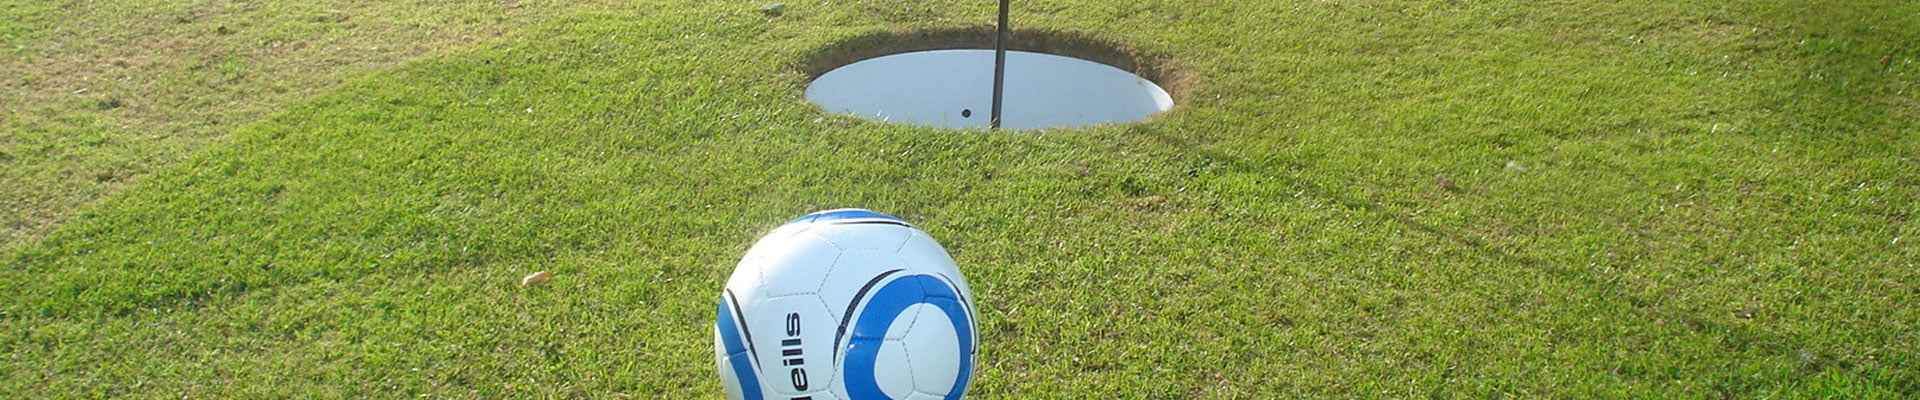 Foot Golf, is a revolution for sport. It combines the social aspect and elegance of Golf with the world's passion for football.